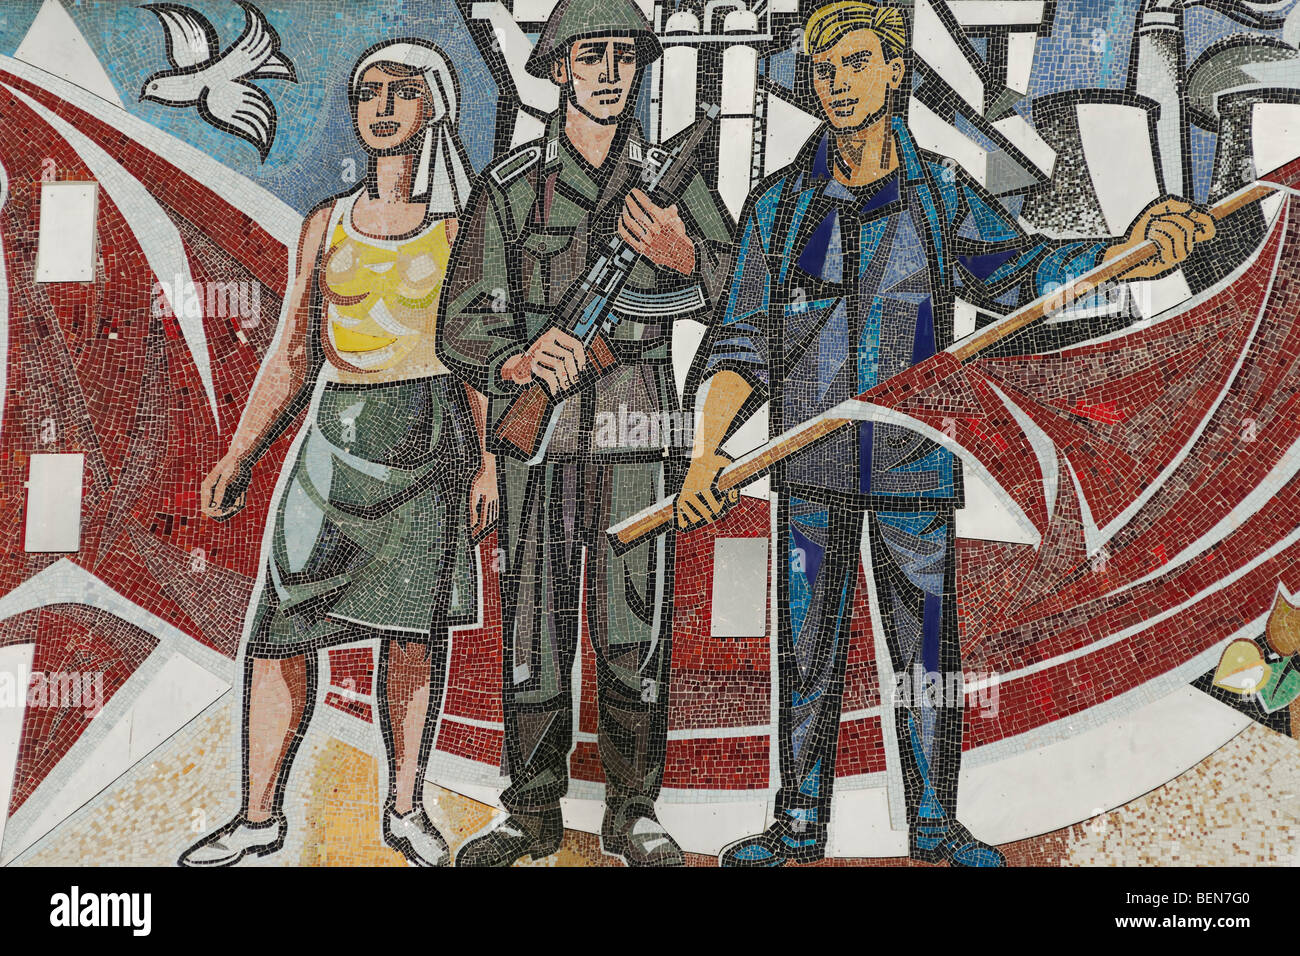 Berlin. Germany. Mosaic detail on the Haus des Lehrers. - Stock Image